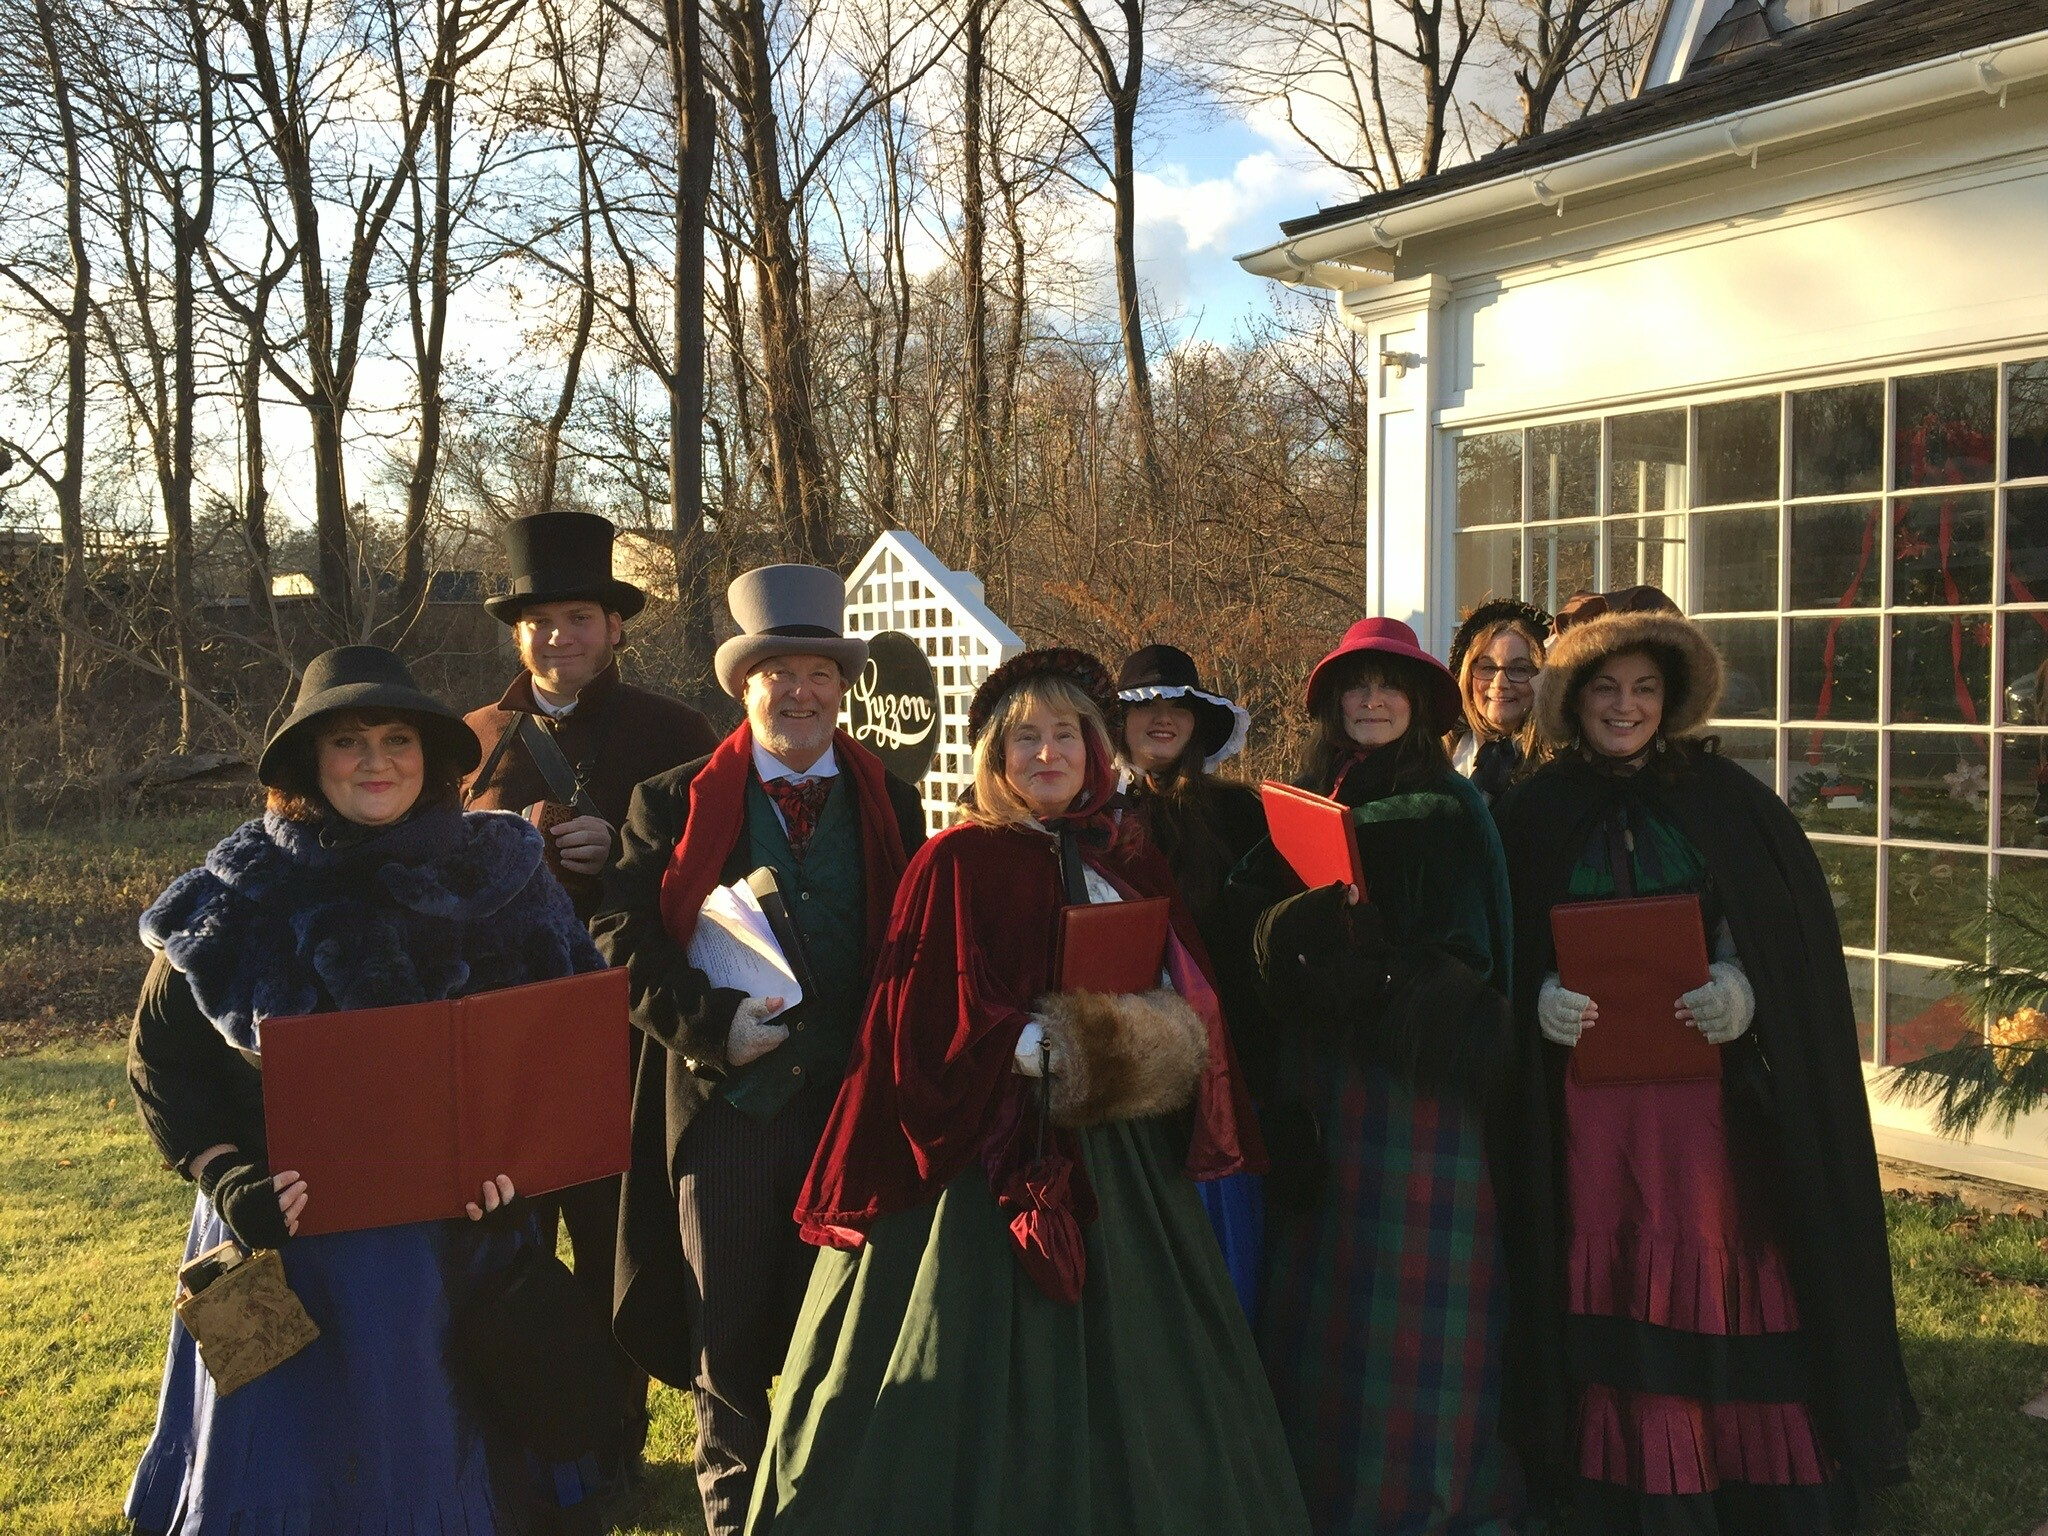 Bonnie Grice and The Dickens Carolers in previous years